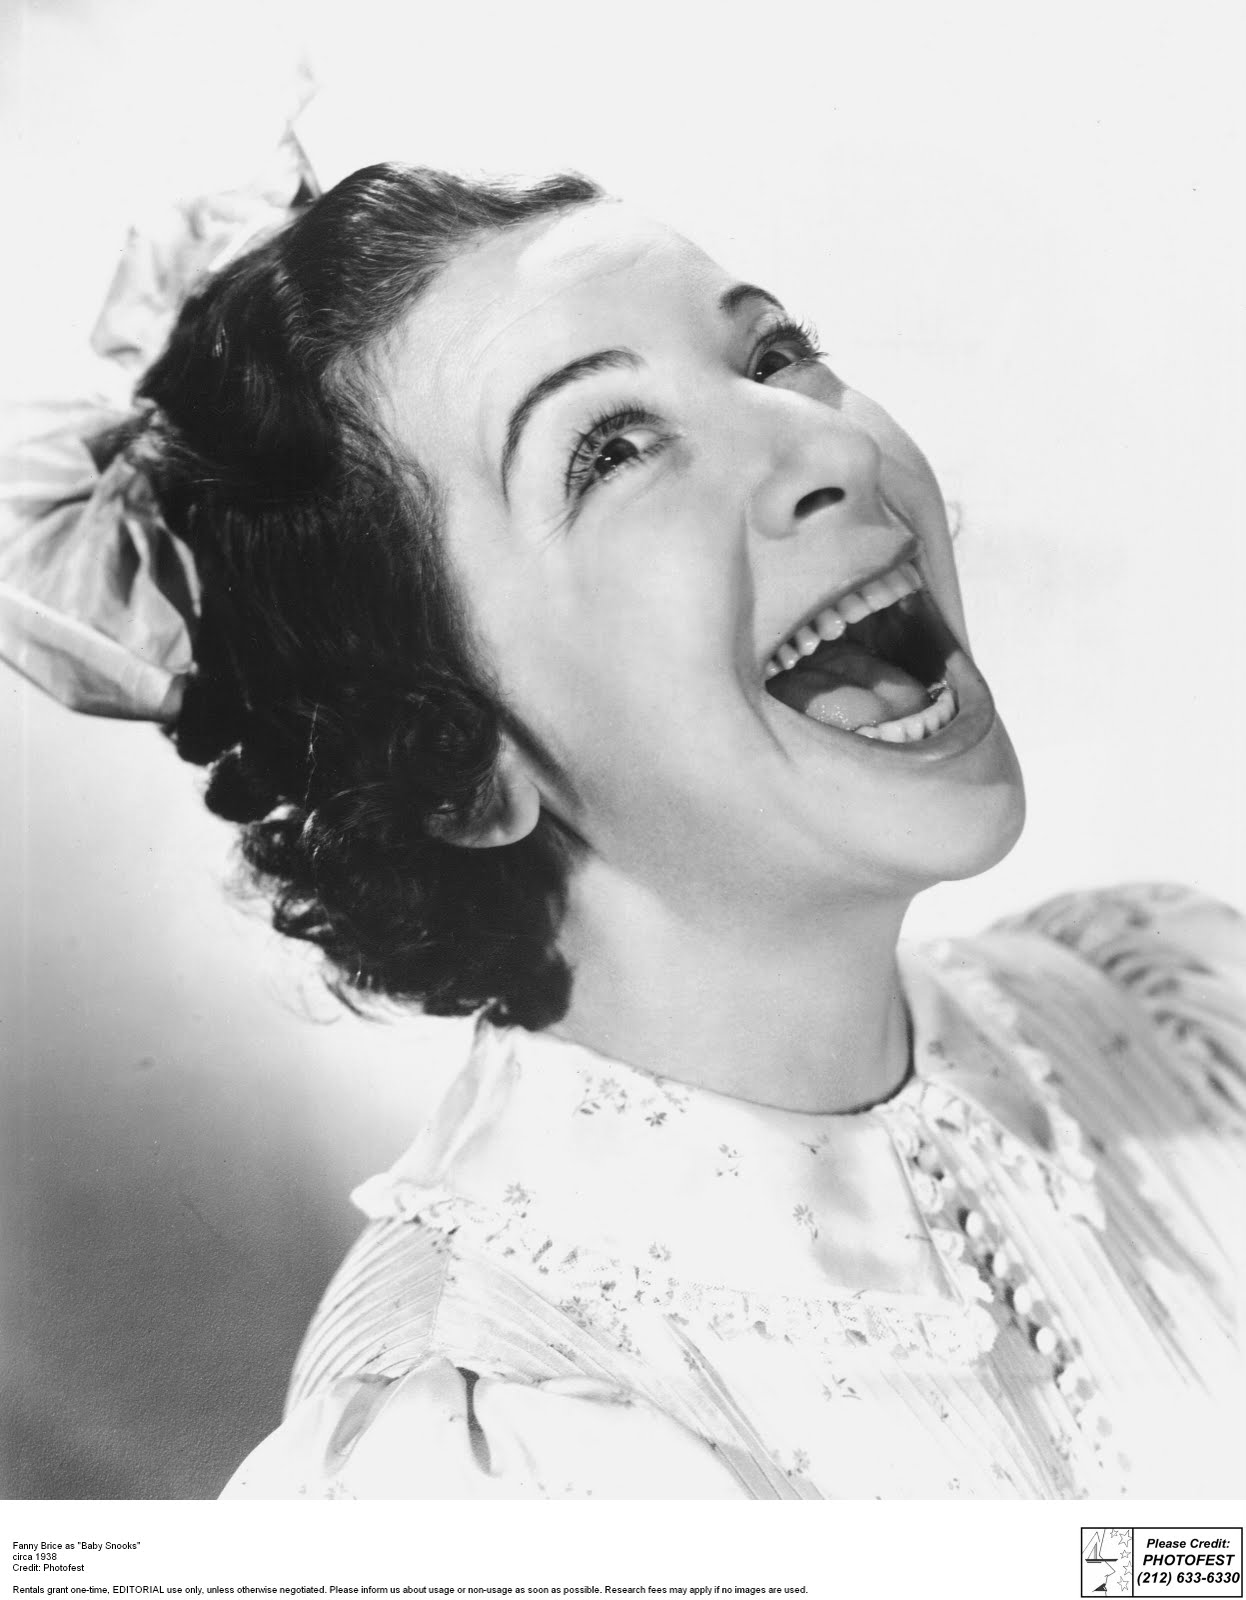 an analysis of the topic of the fanny brices career Fanny brice, and the jewish origins of rrose selavy bradley  bailey during the  all use subject to    la vie,  meaning drink it up or celebrate life4  (rrose selavy's first job, when she  appeared.